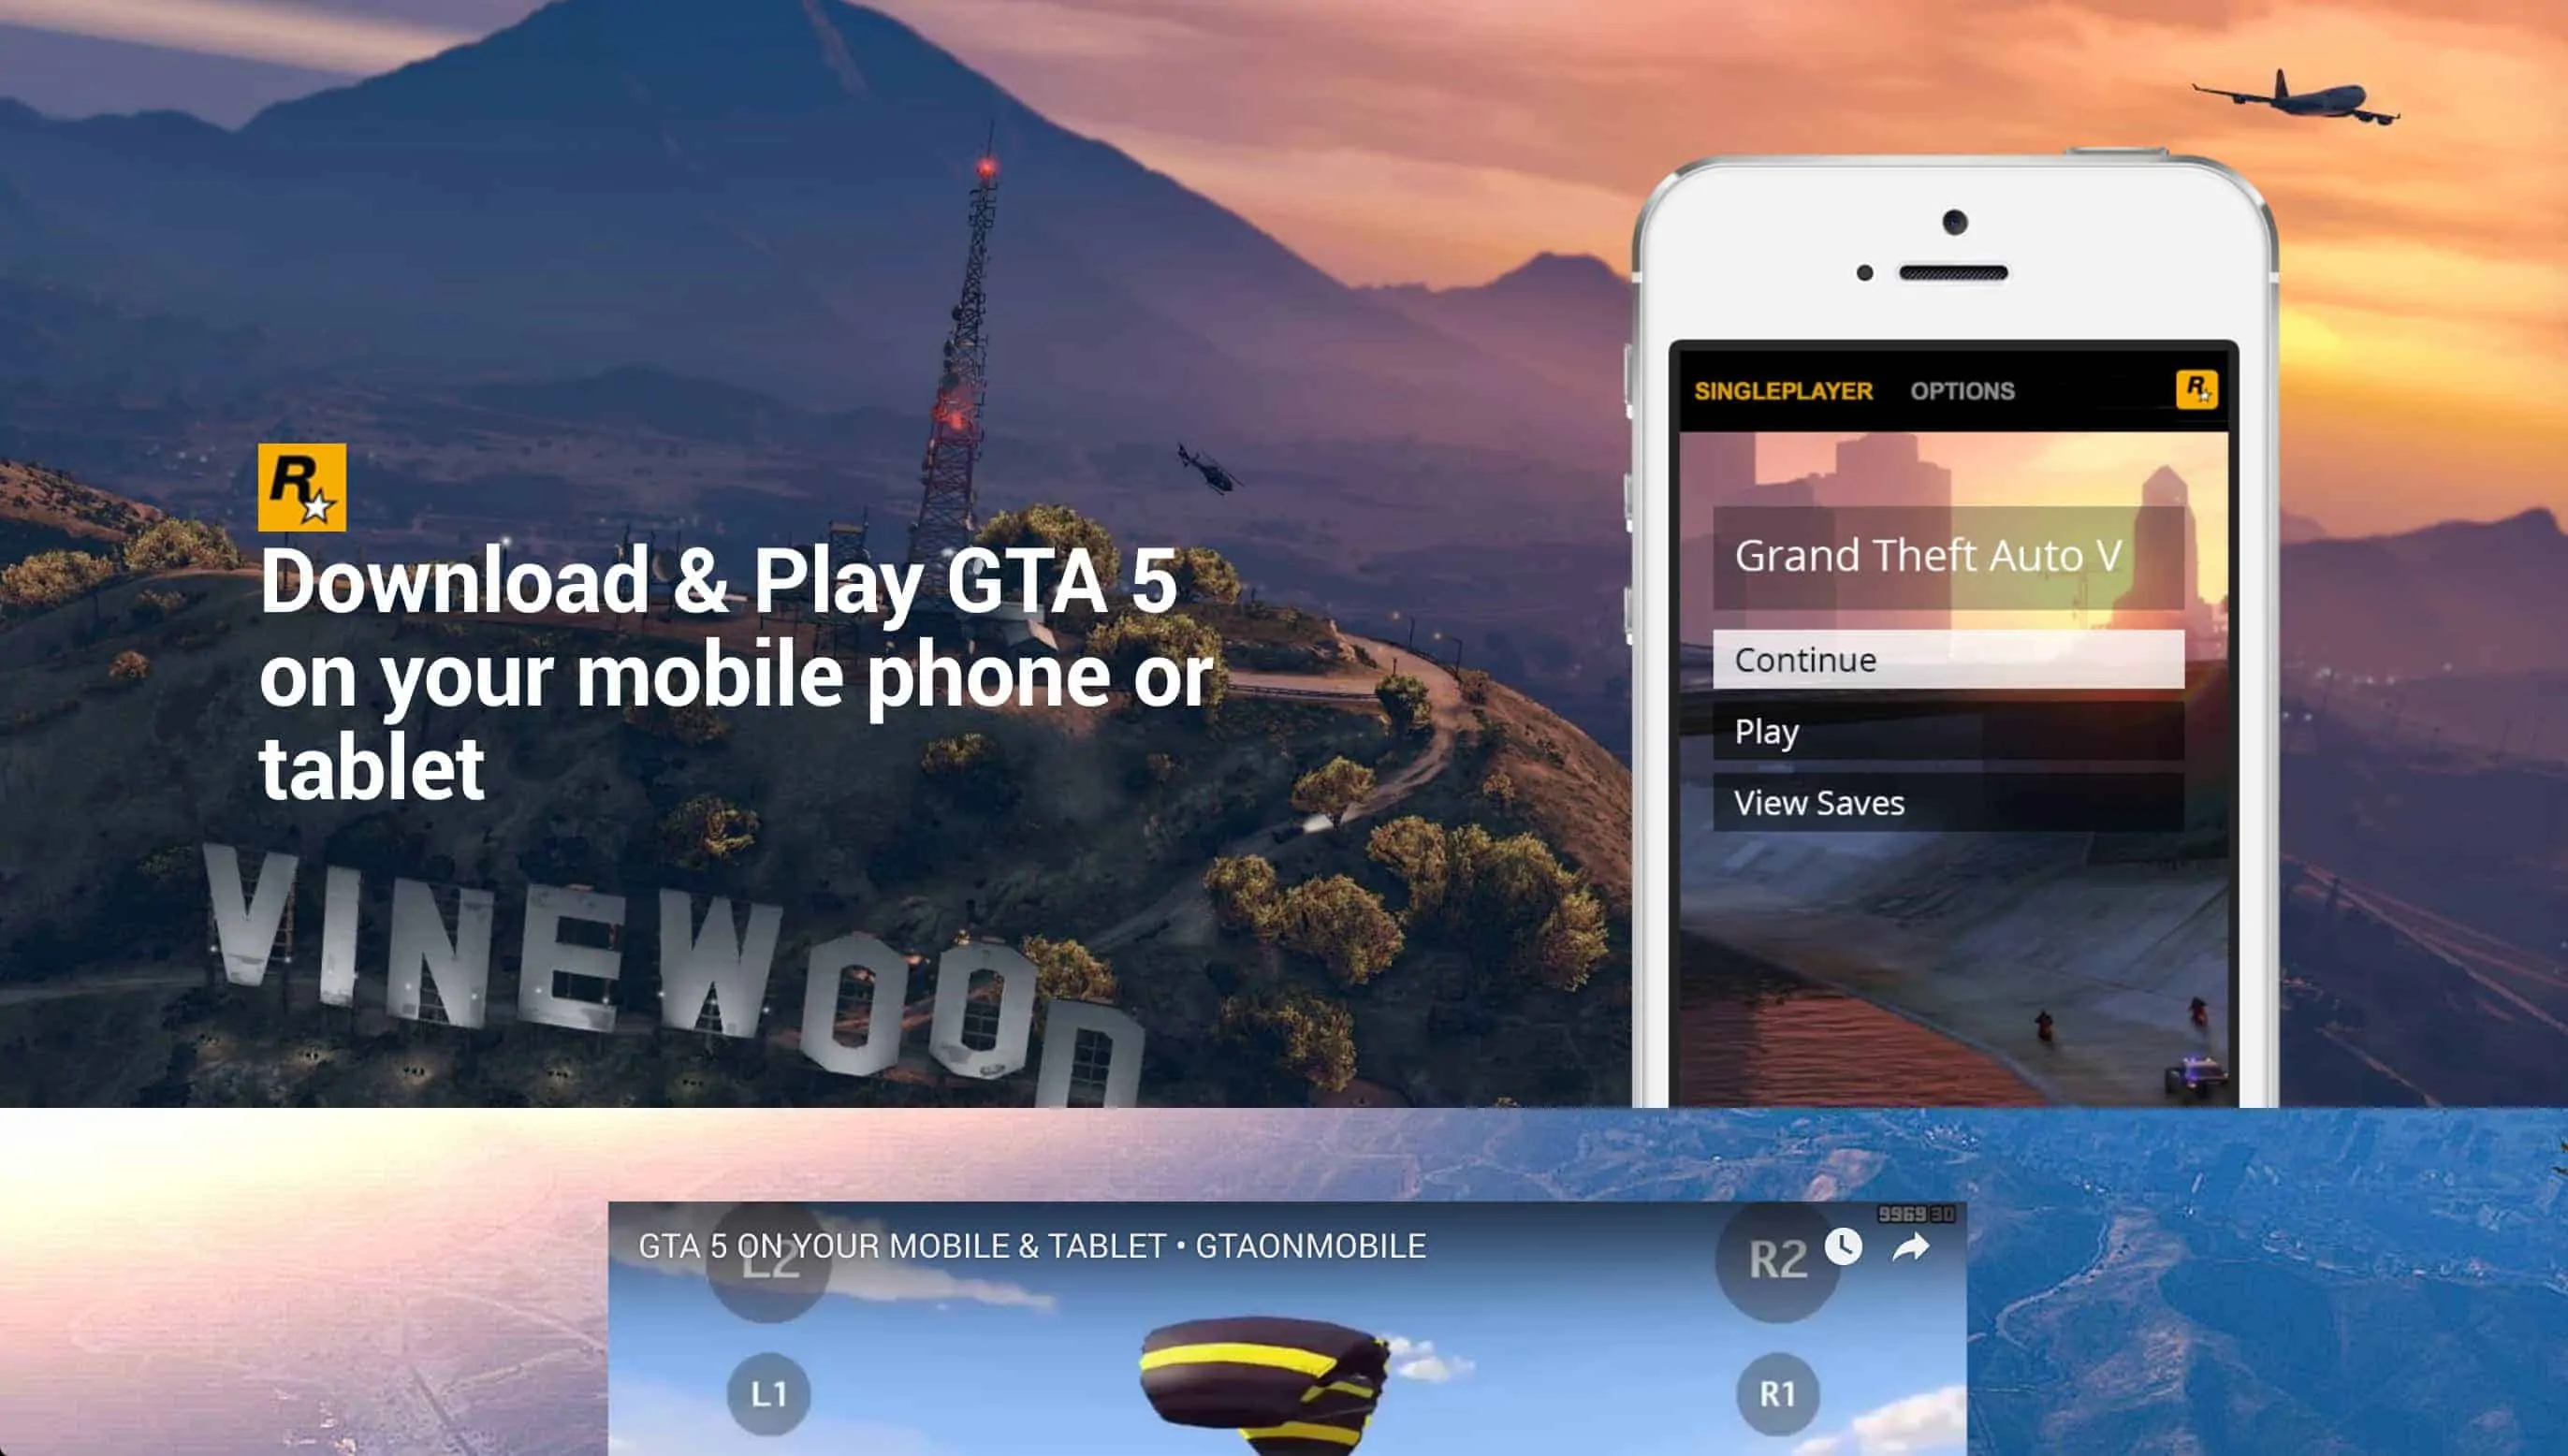 Warning: GTA 5 Android & GTA 5 Mobile, APK Downloads Are Scams - GTA